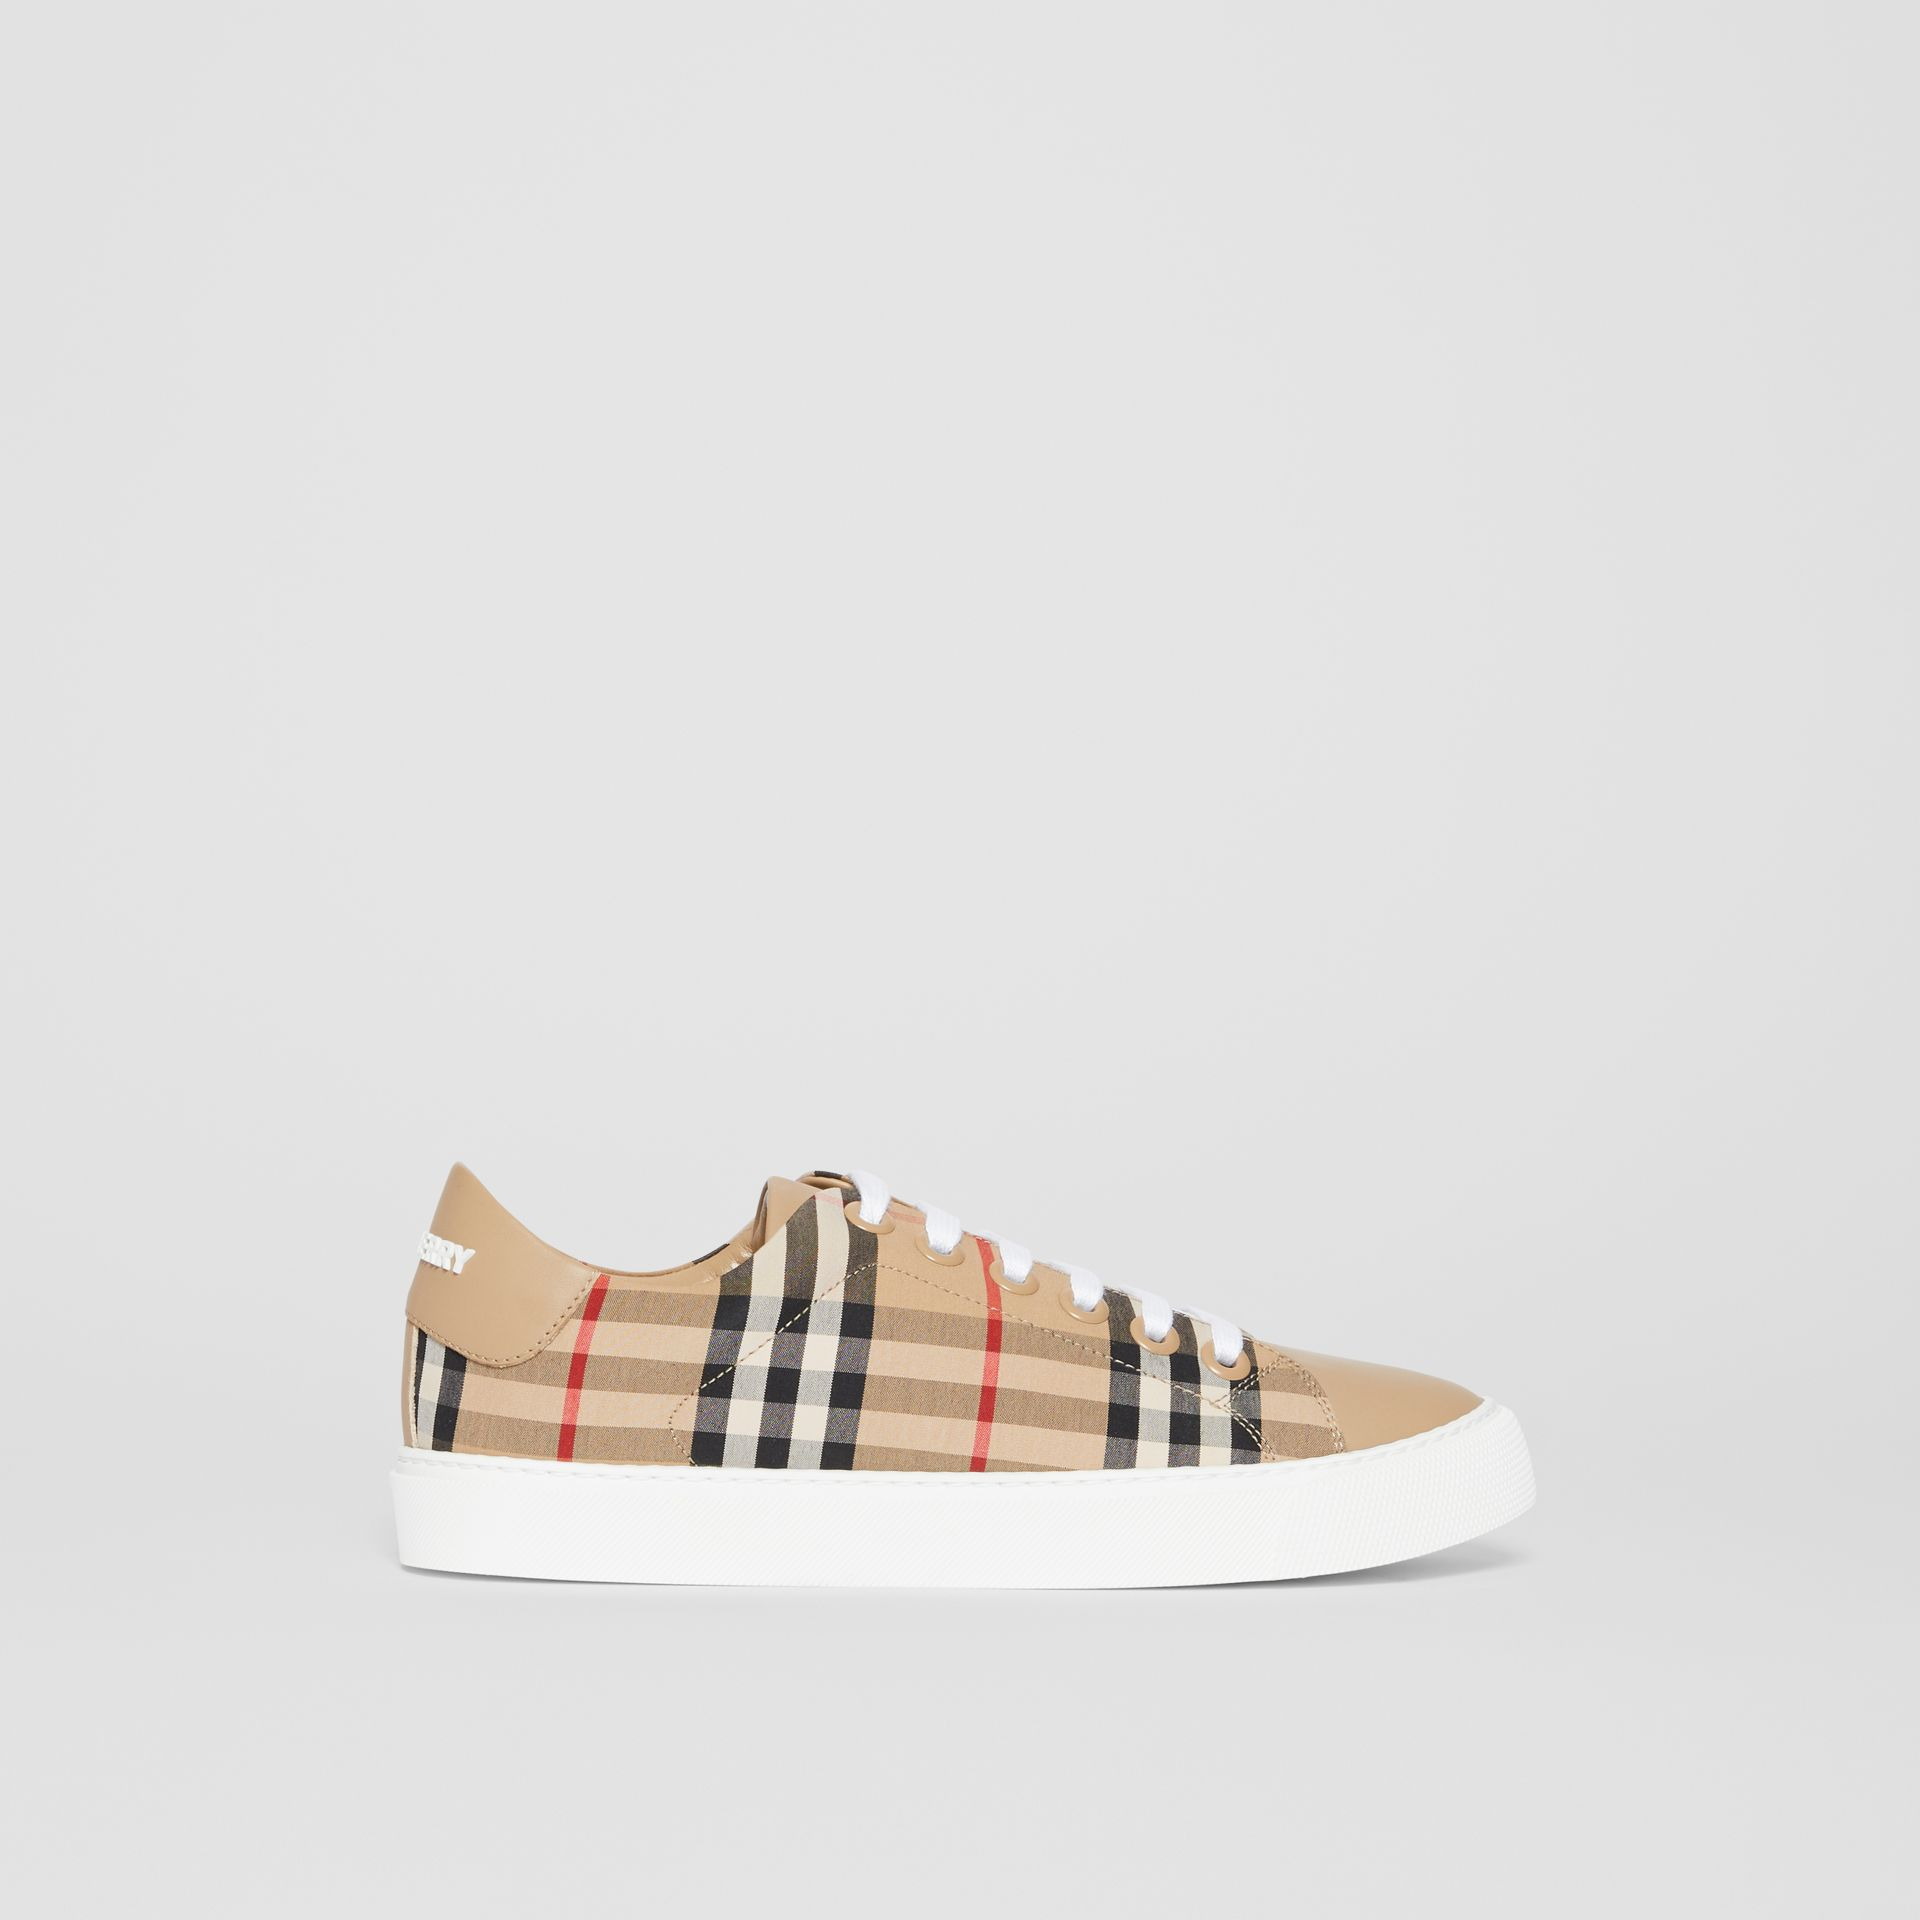 Vintage Check and Leather Sneakers in Archive Beige - Women | Burberry United States - gallery image 5